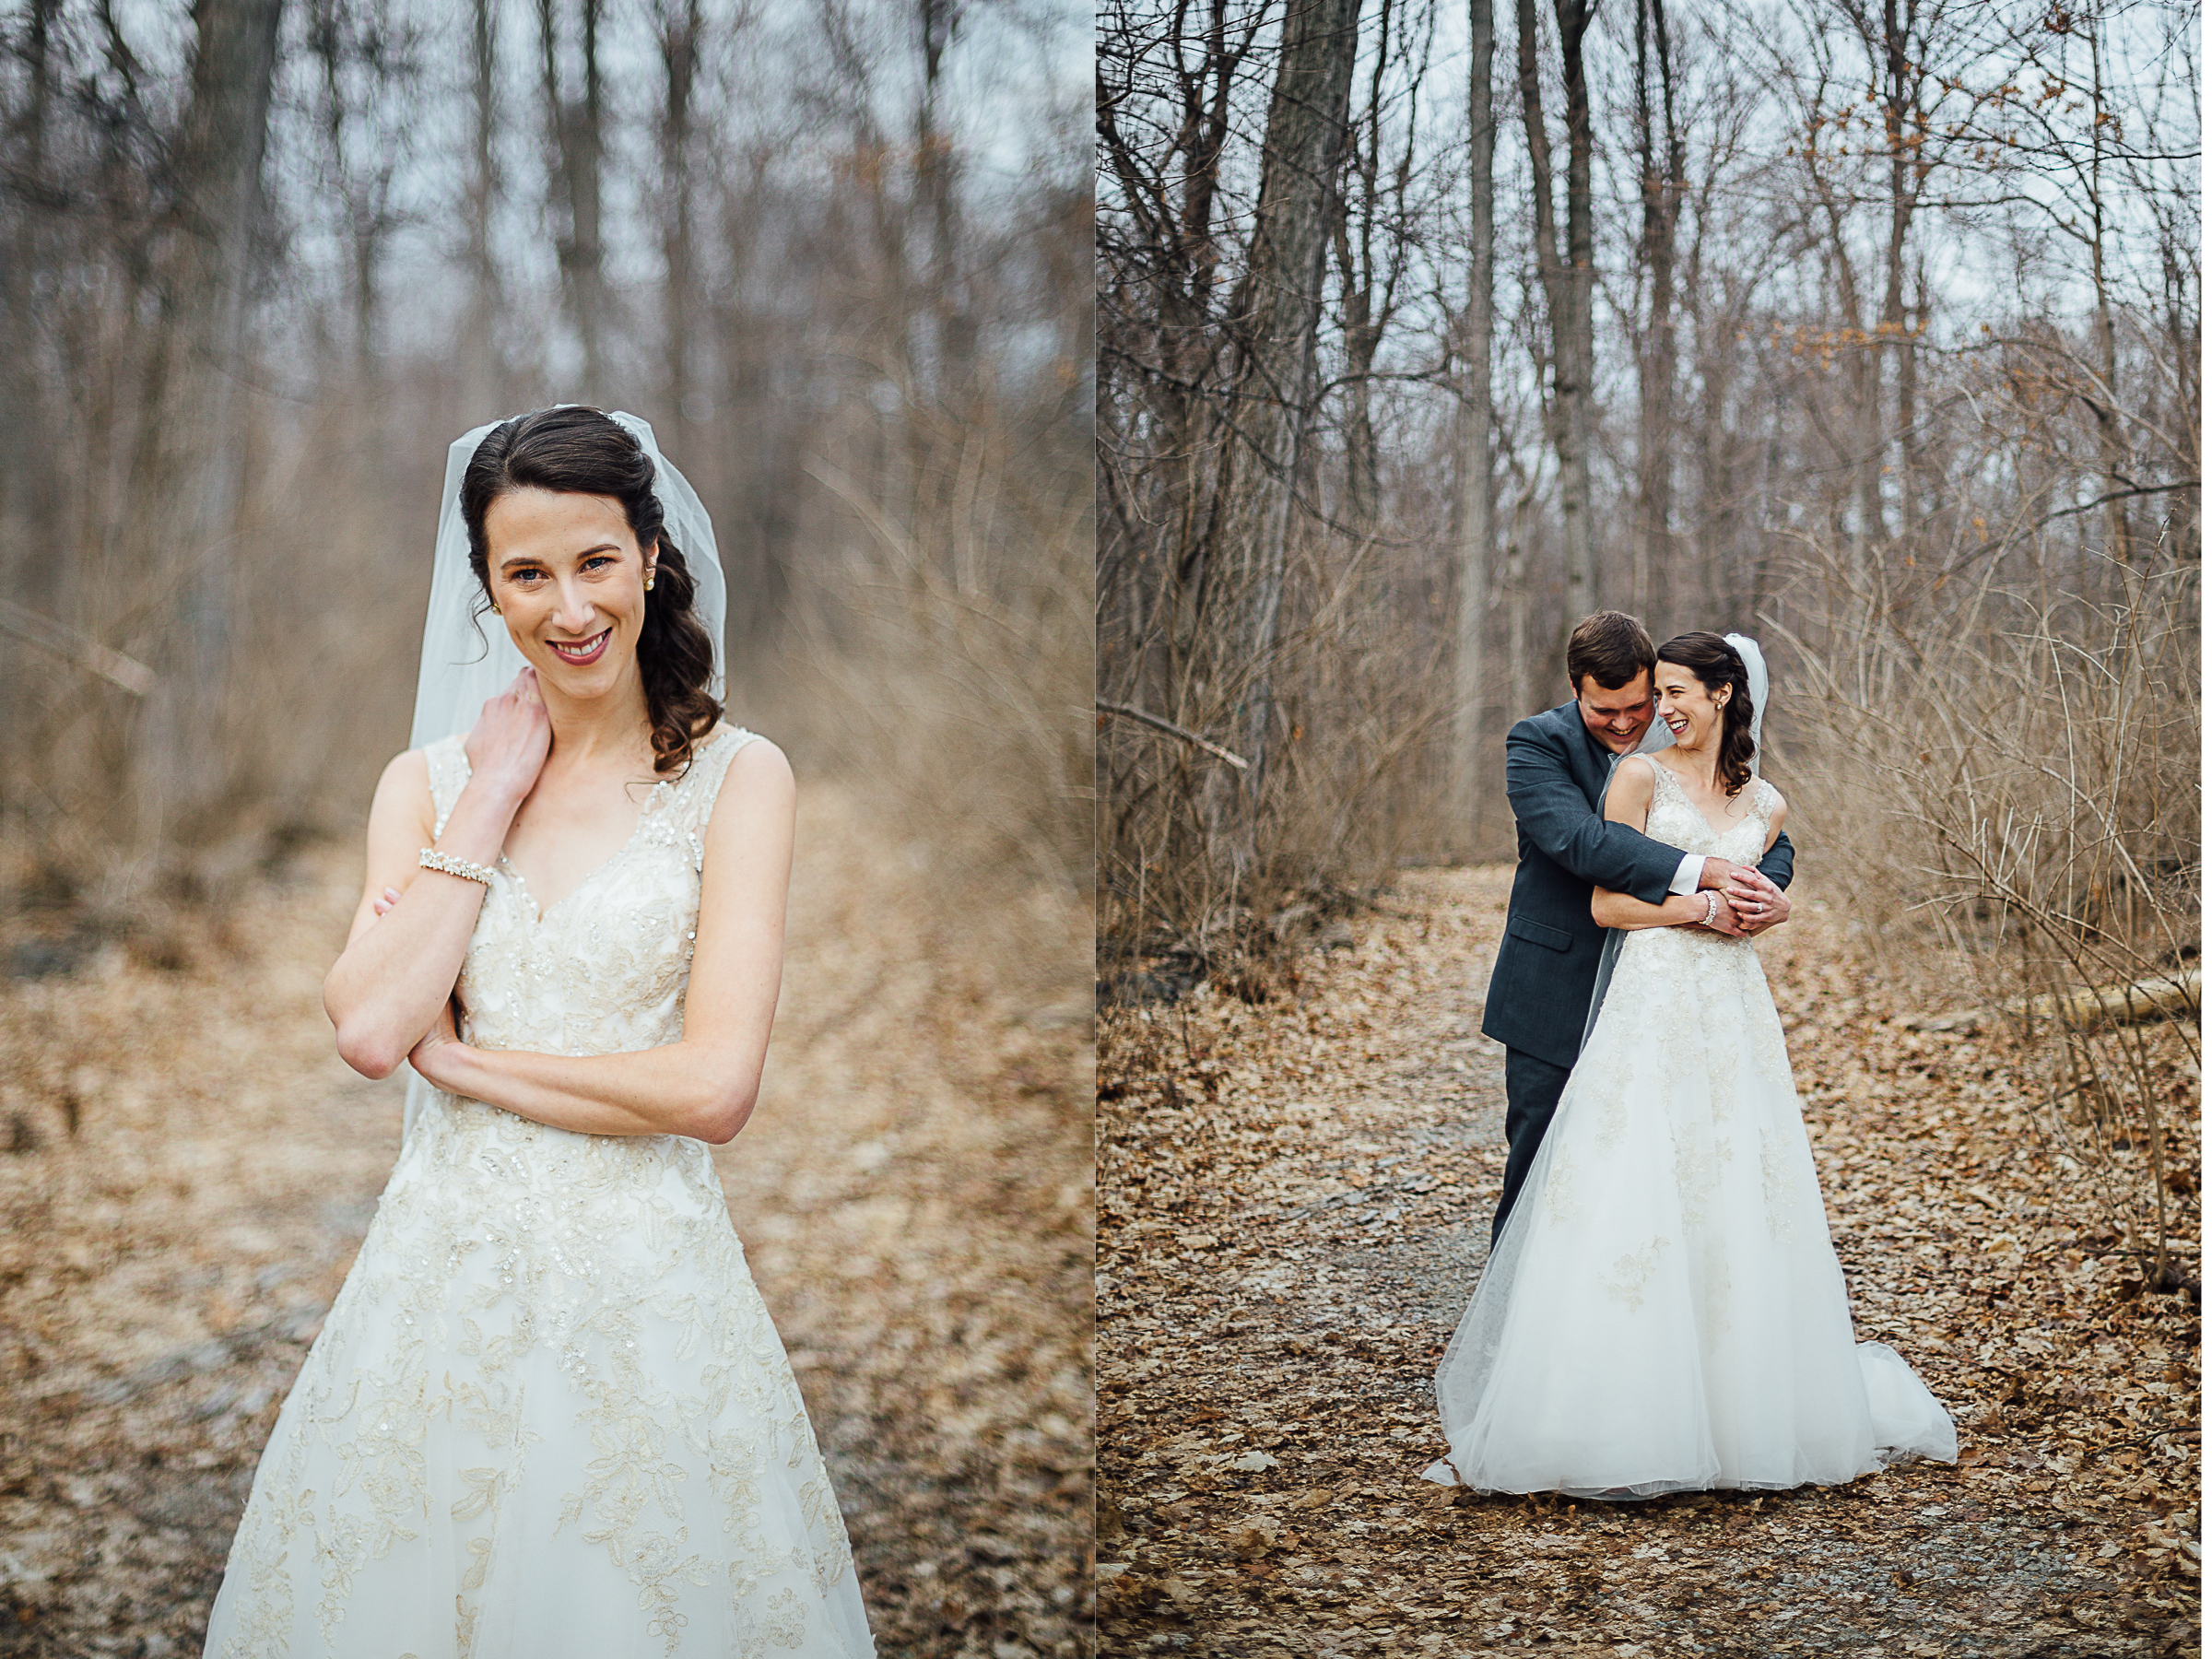 Lovely Bride and Groom by Corrie Mick Photography.jpg